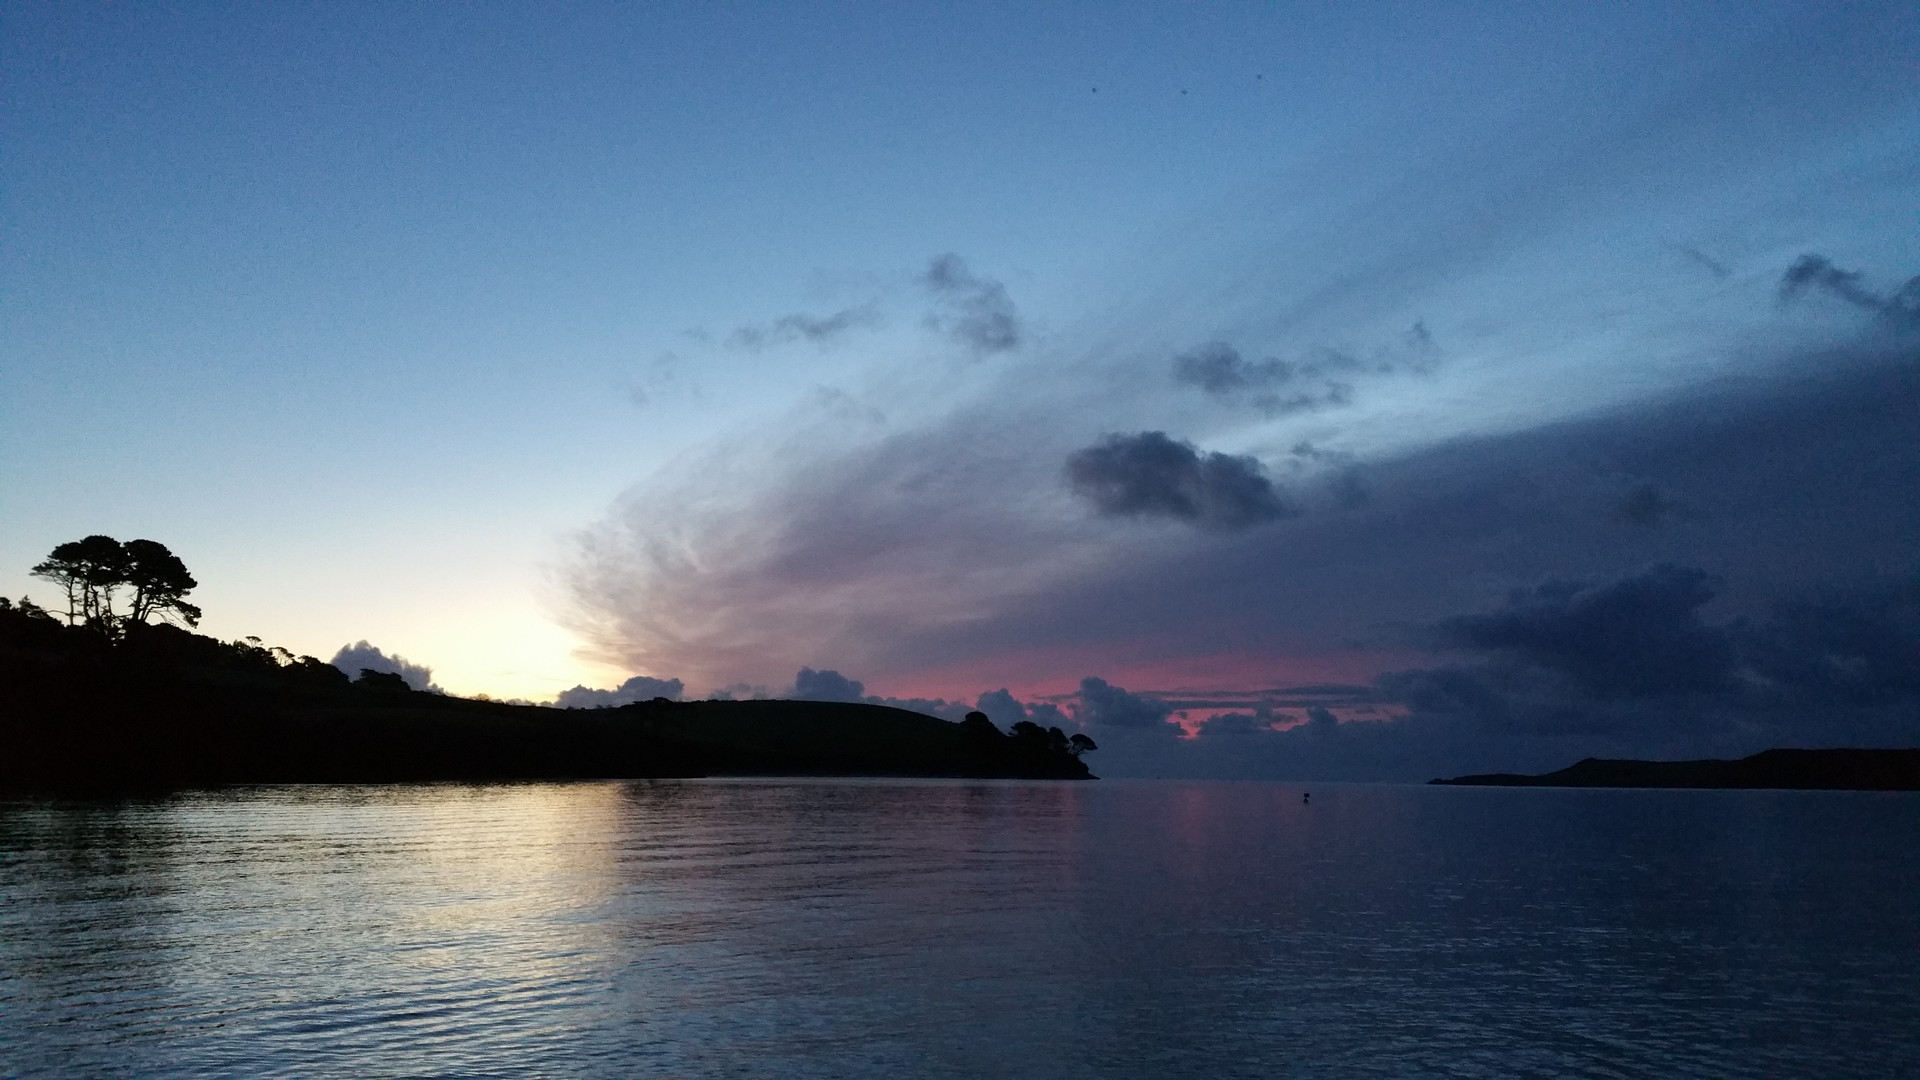 A morning swim, sunrise. Looking East through the mouth of the Helford River.